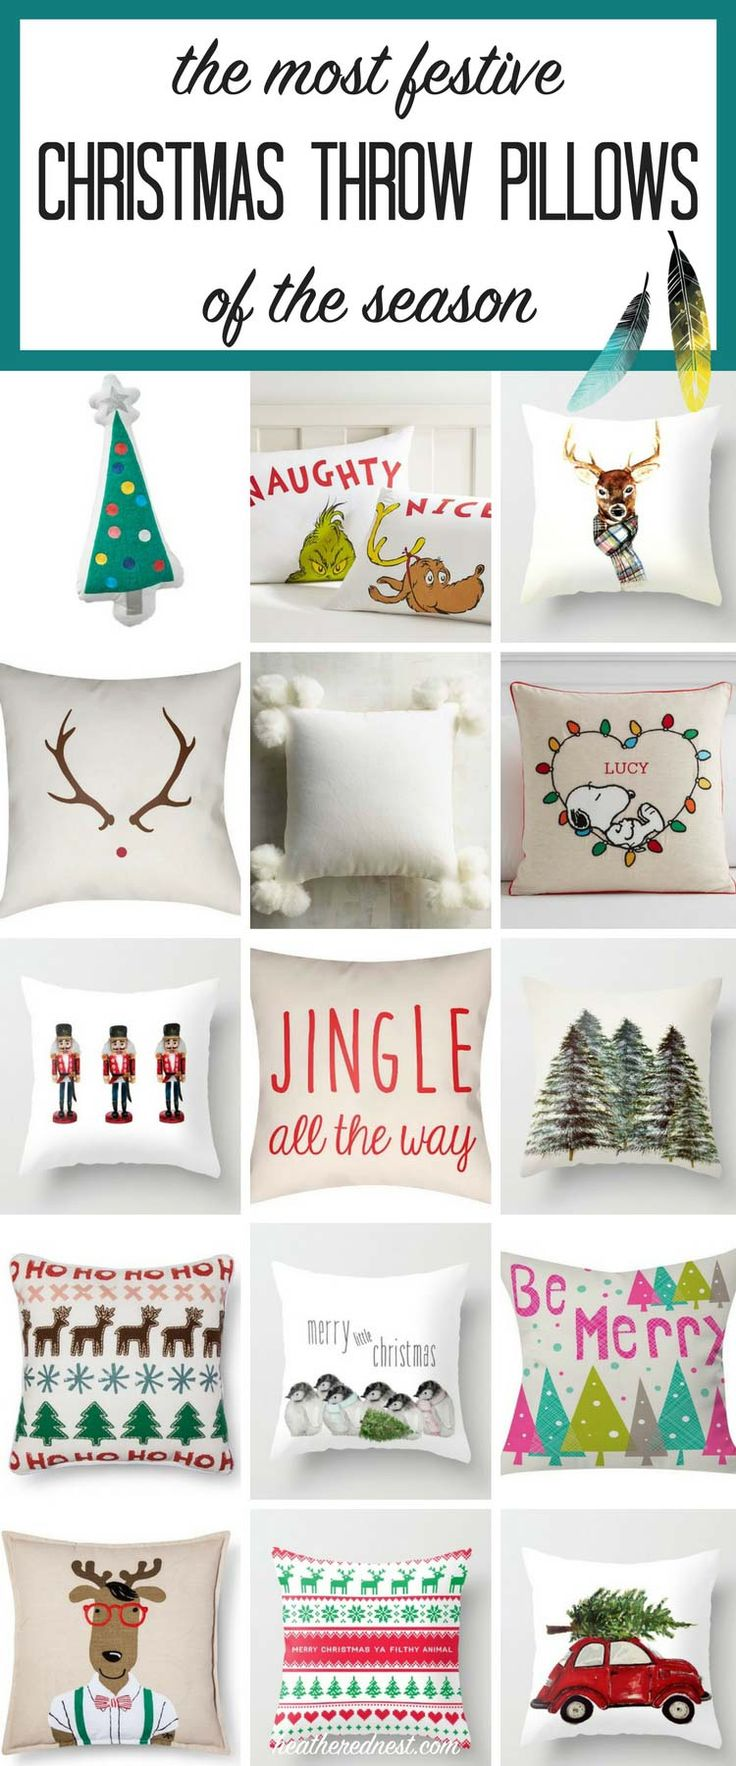 ALL the best Christmas pillows of the season in ONE spot!! Found so many here I LOVE!!